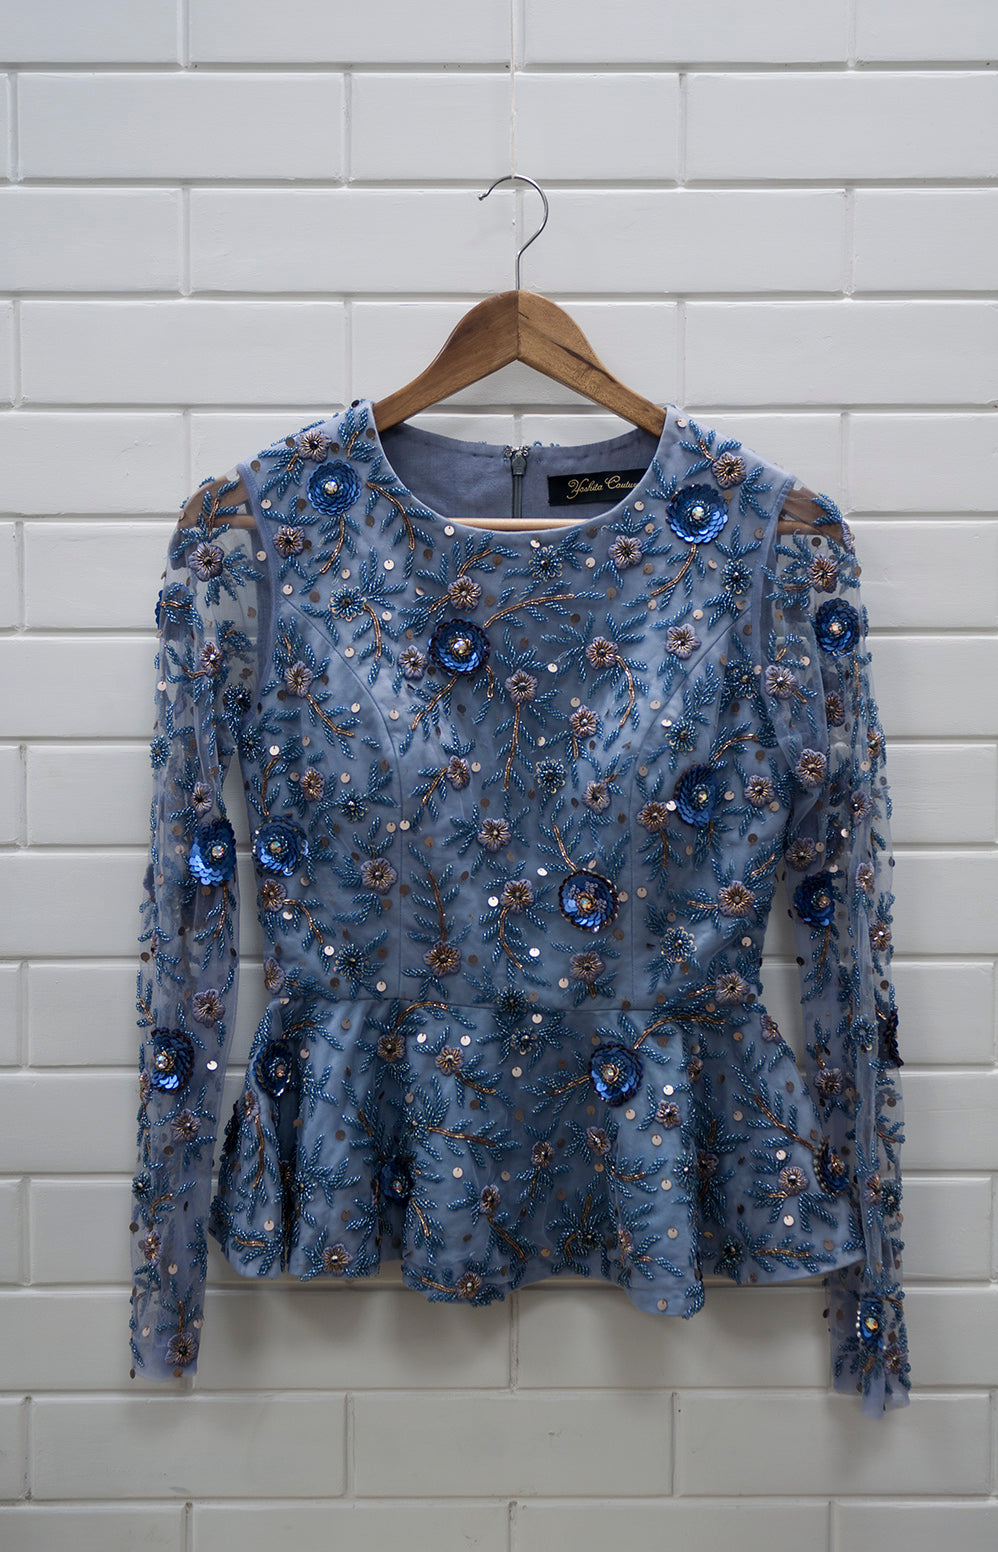 YC - Indigo Floral Full-sleeves Top